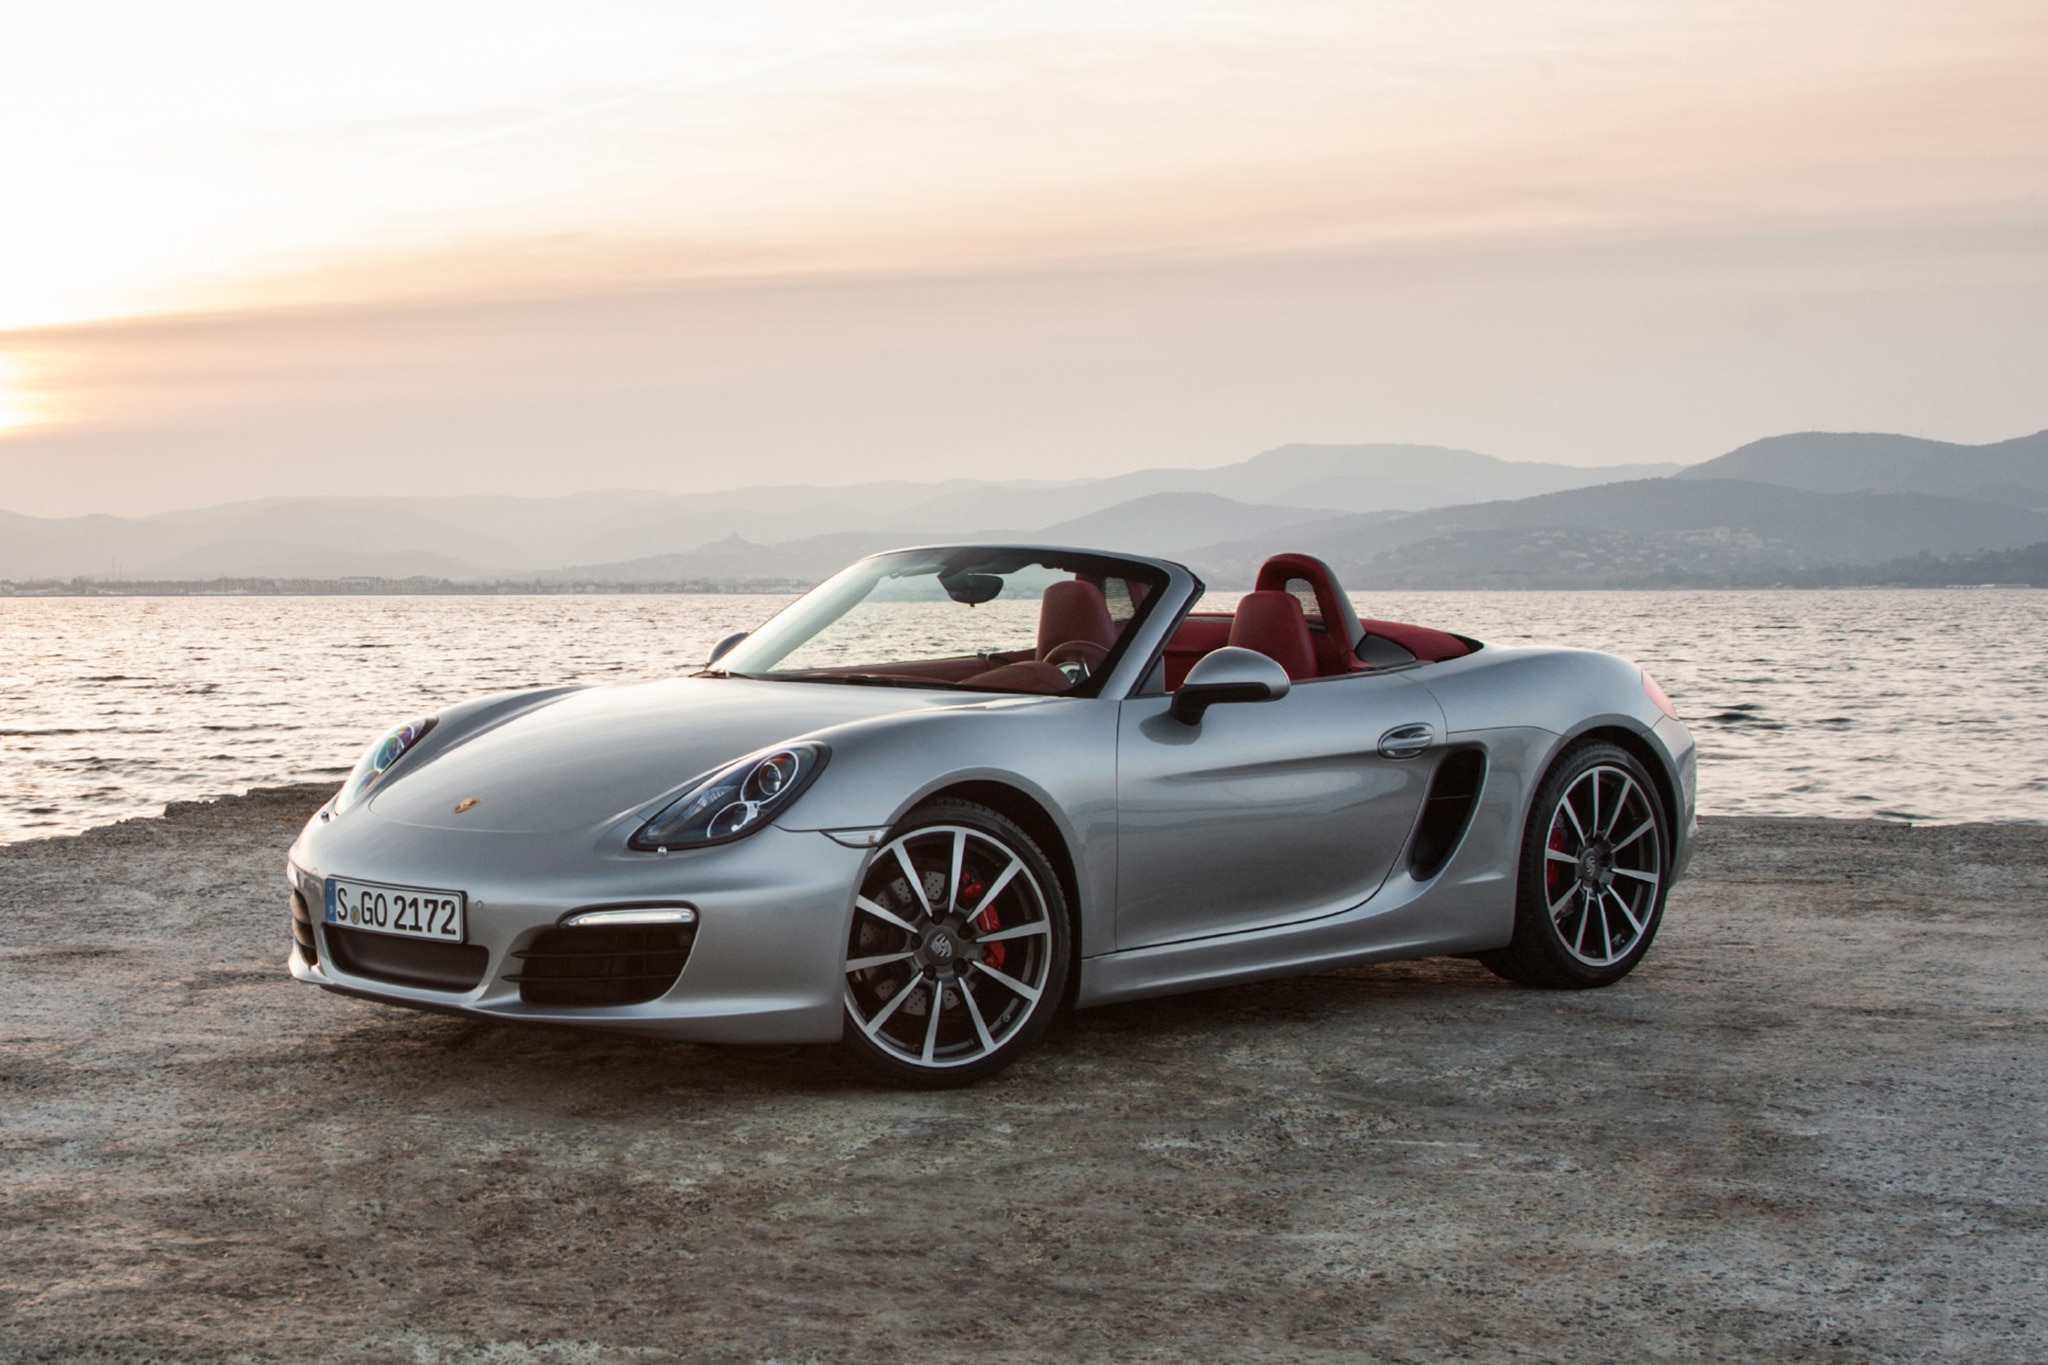 Roadster Roundup Porsche Boxster S Vs Mercedes Benz Slk55 Amg Vs Bmw Z4 Sdrive35is